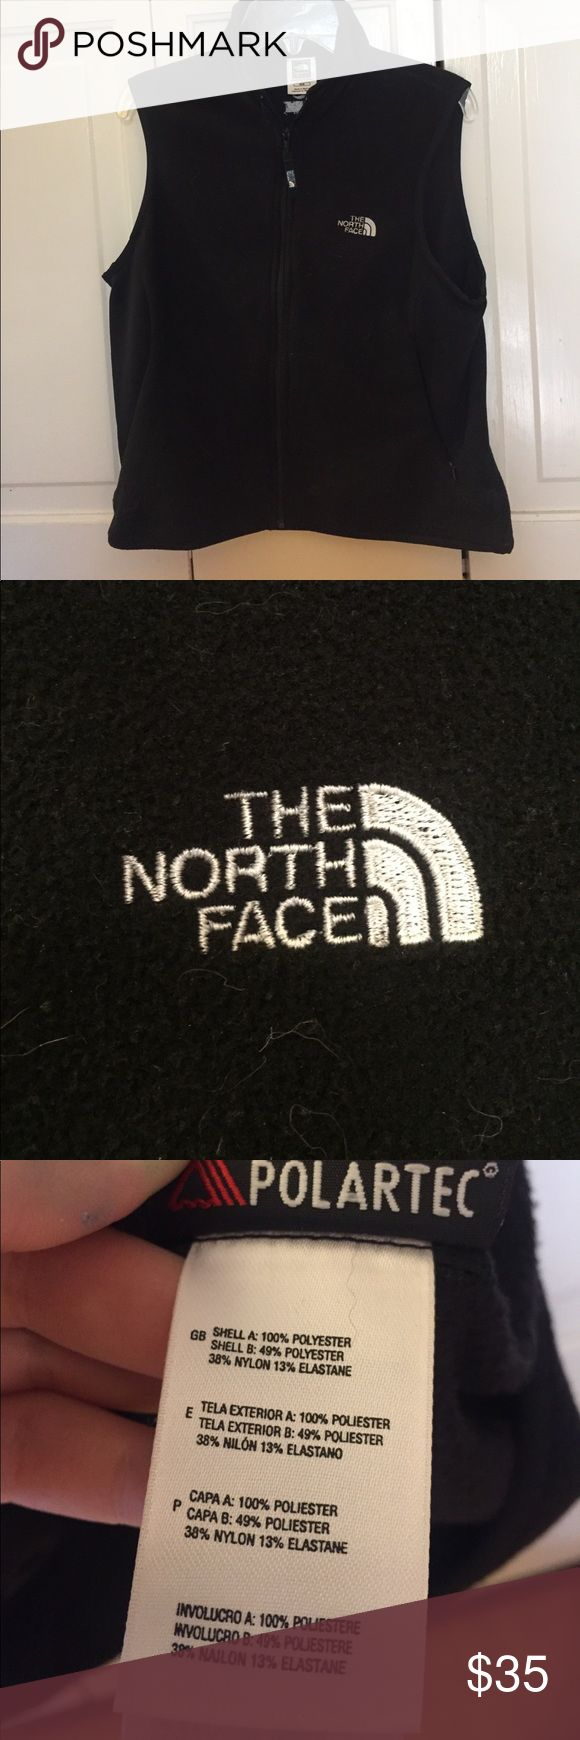 The North Face Flight series black vest Never worn before black The North Face vest. Women's medium. Does attract lint. Great for the fall! New but no tags The North Face Jackets & Coats Vests